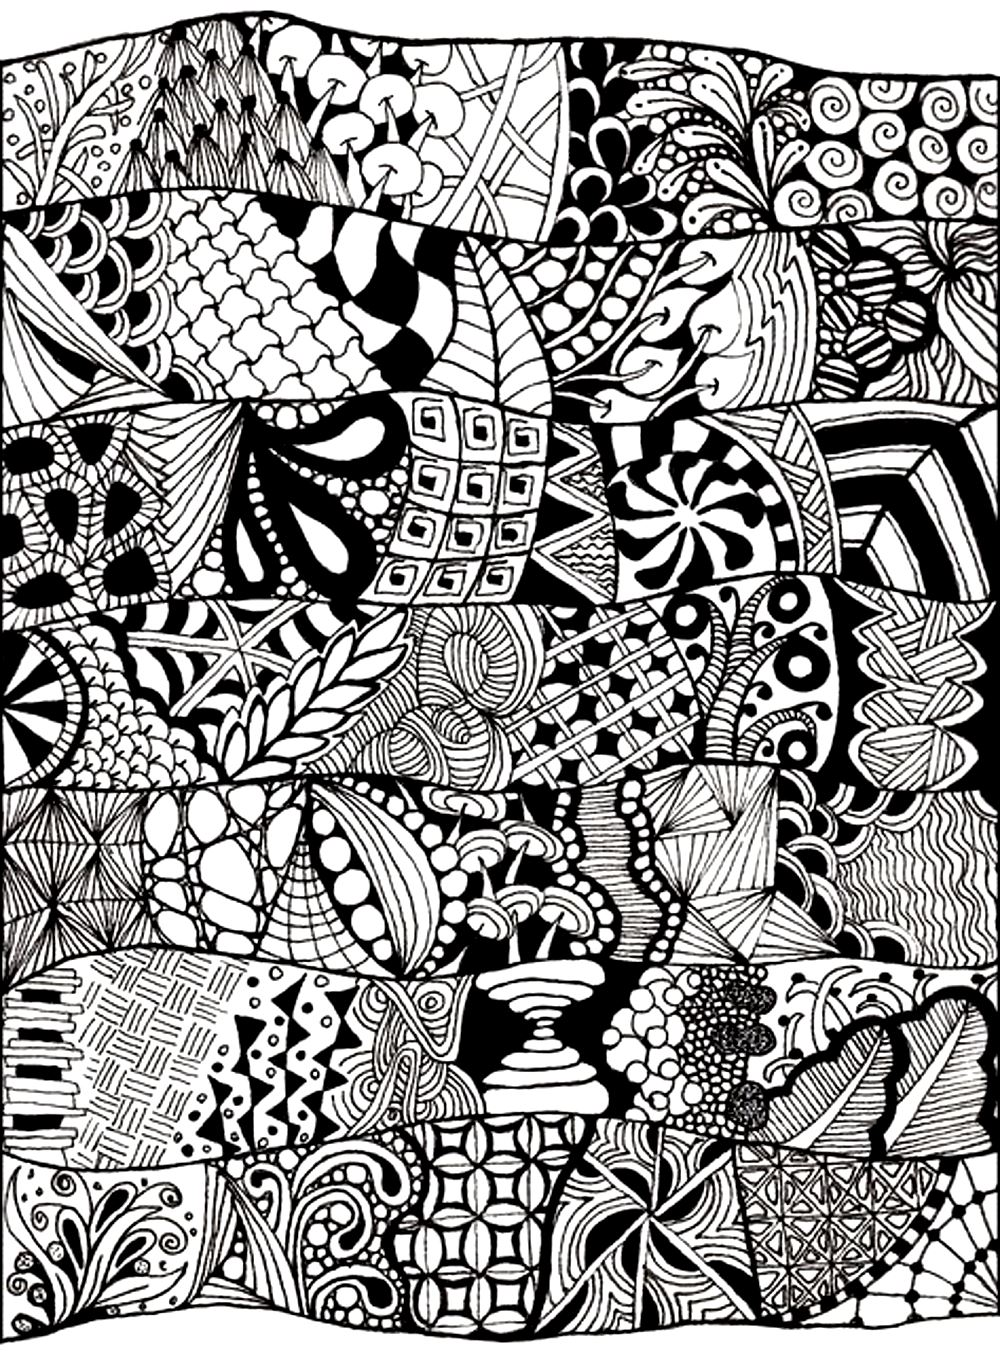 free printable coloring pages for adults zen : Coloring Adult Zen Anti Stress Abstract To Print Free